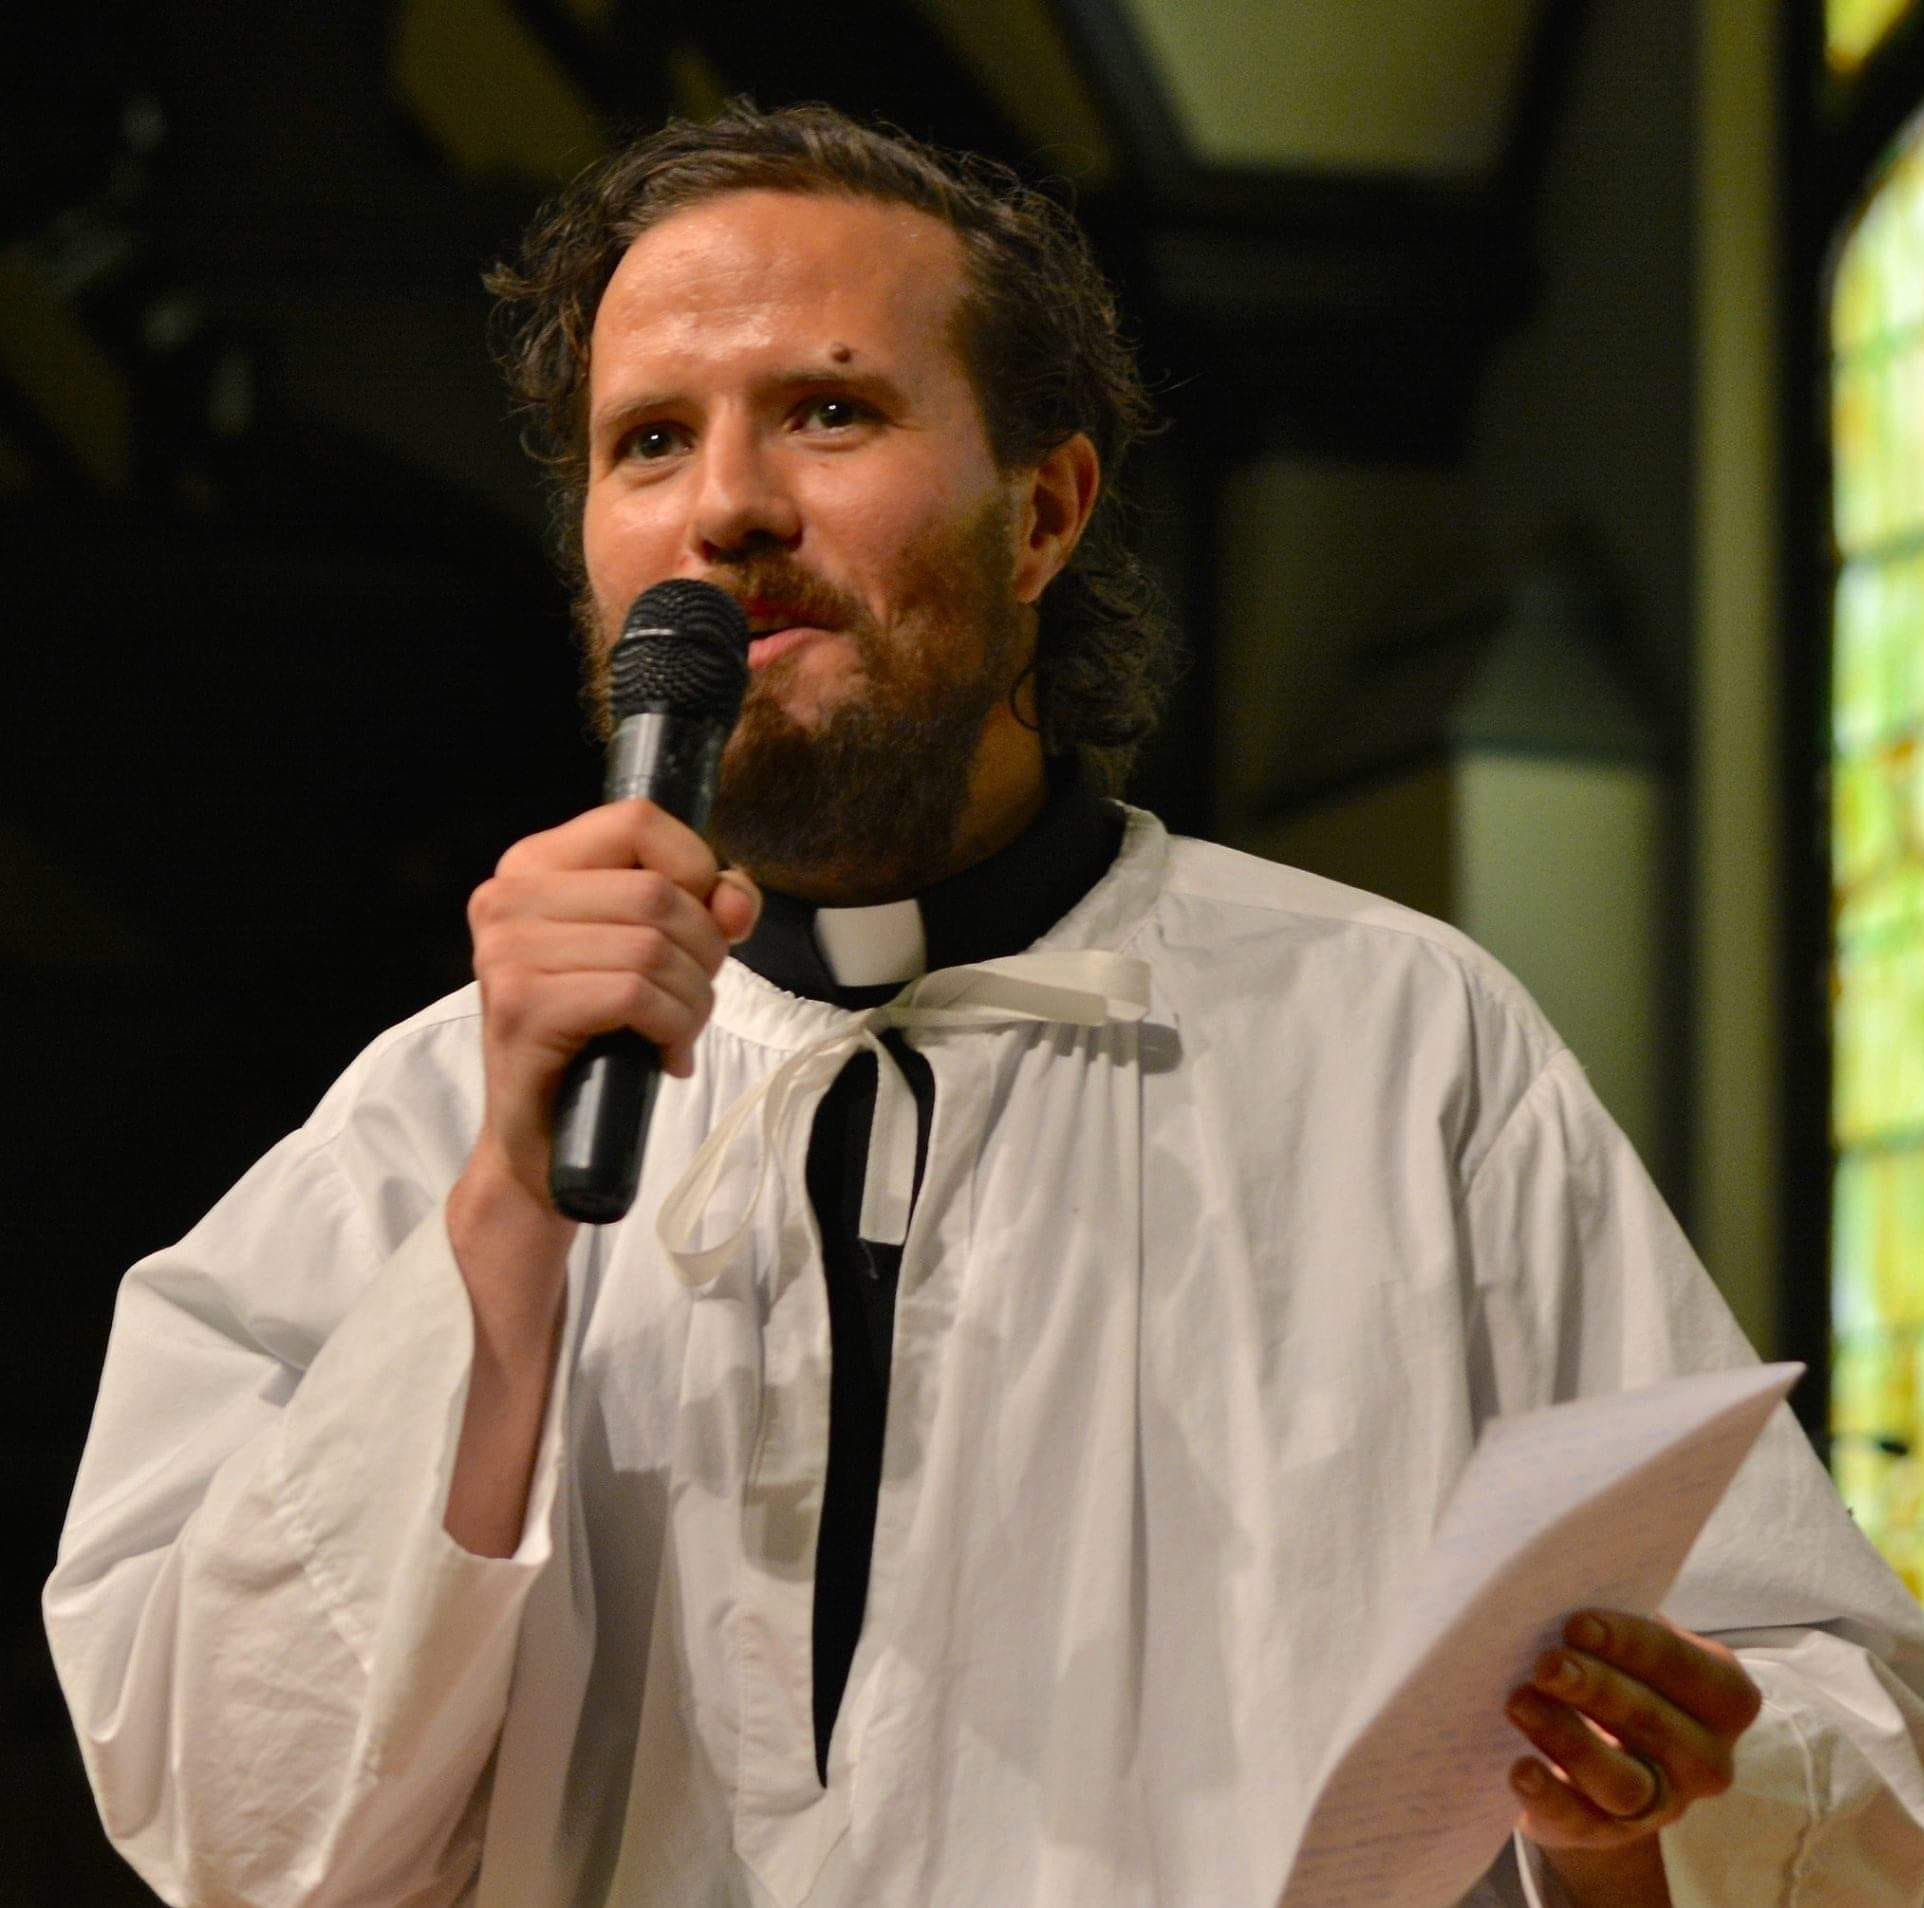 Kenosha Lutheran church pastor Jonathan Barker supports the Green New Deal with a hunger strike